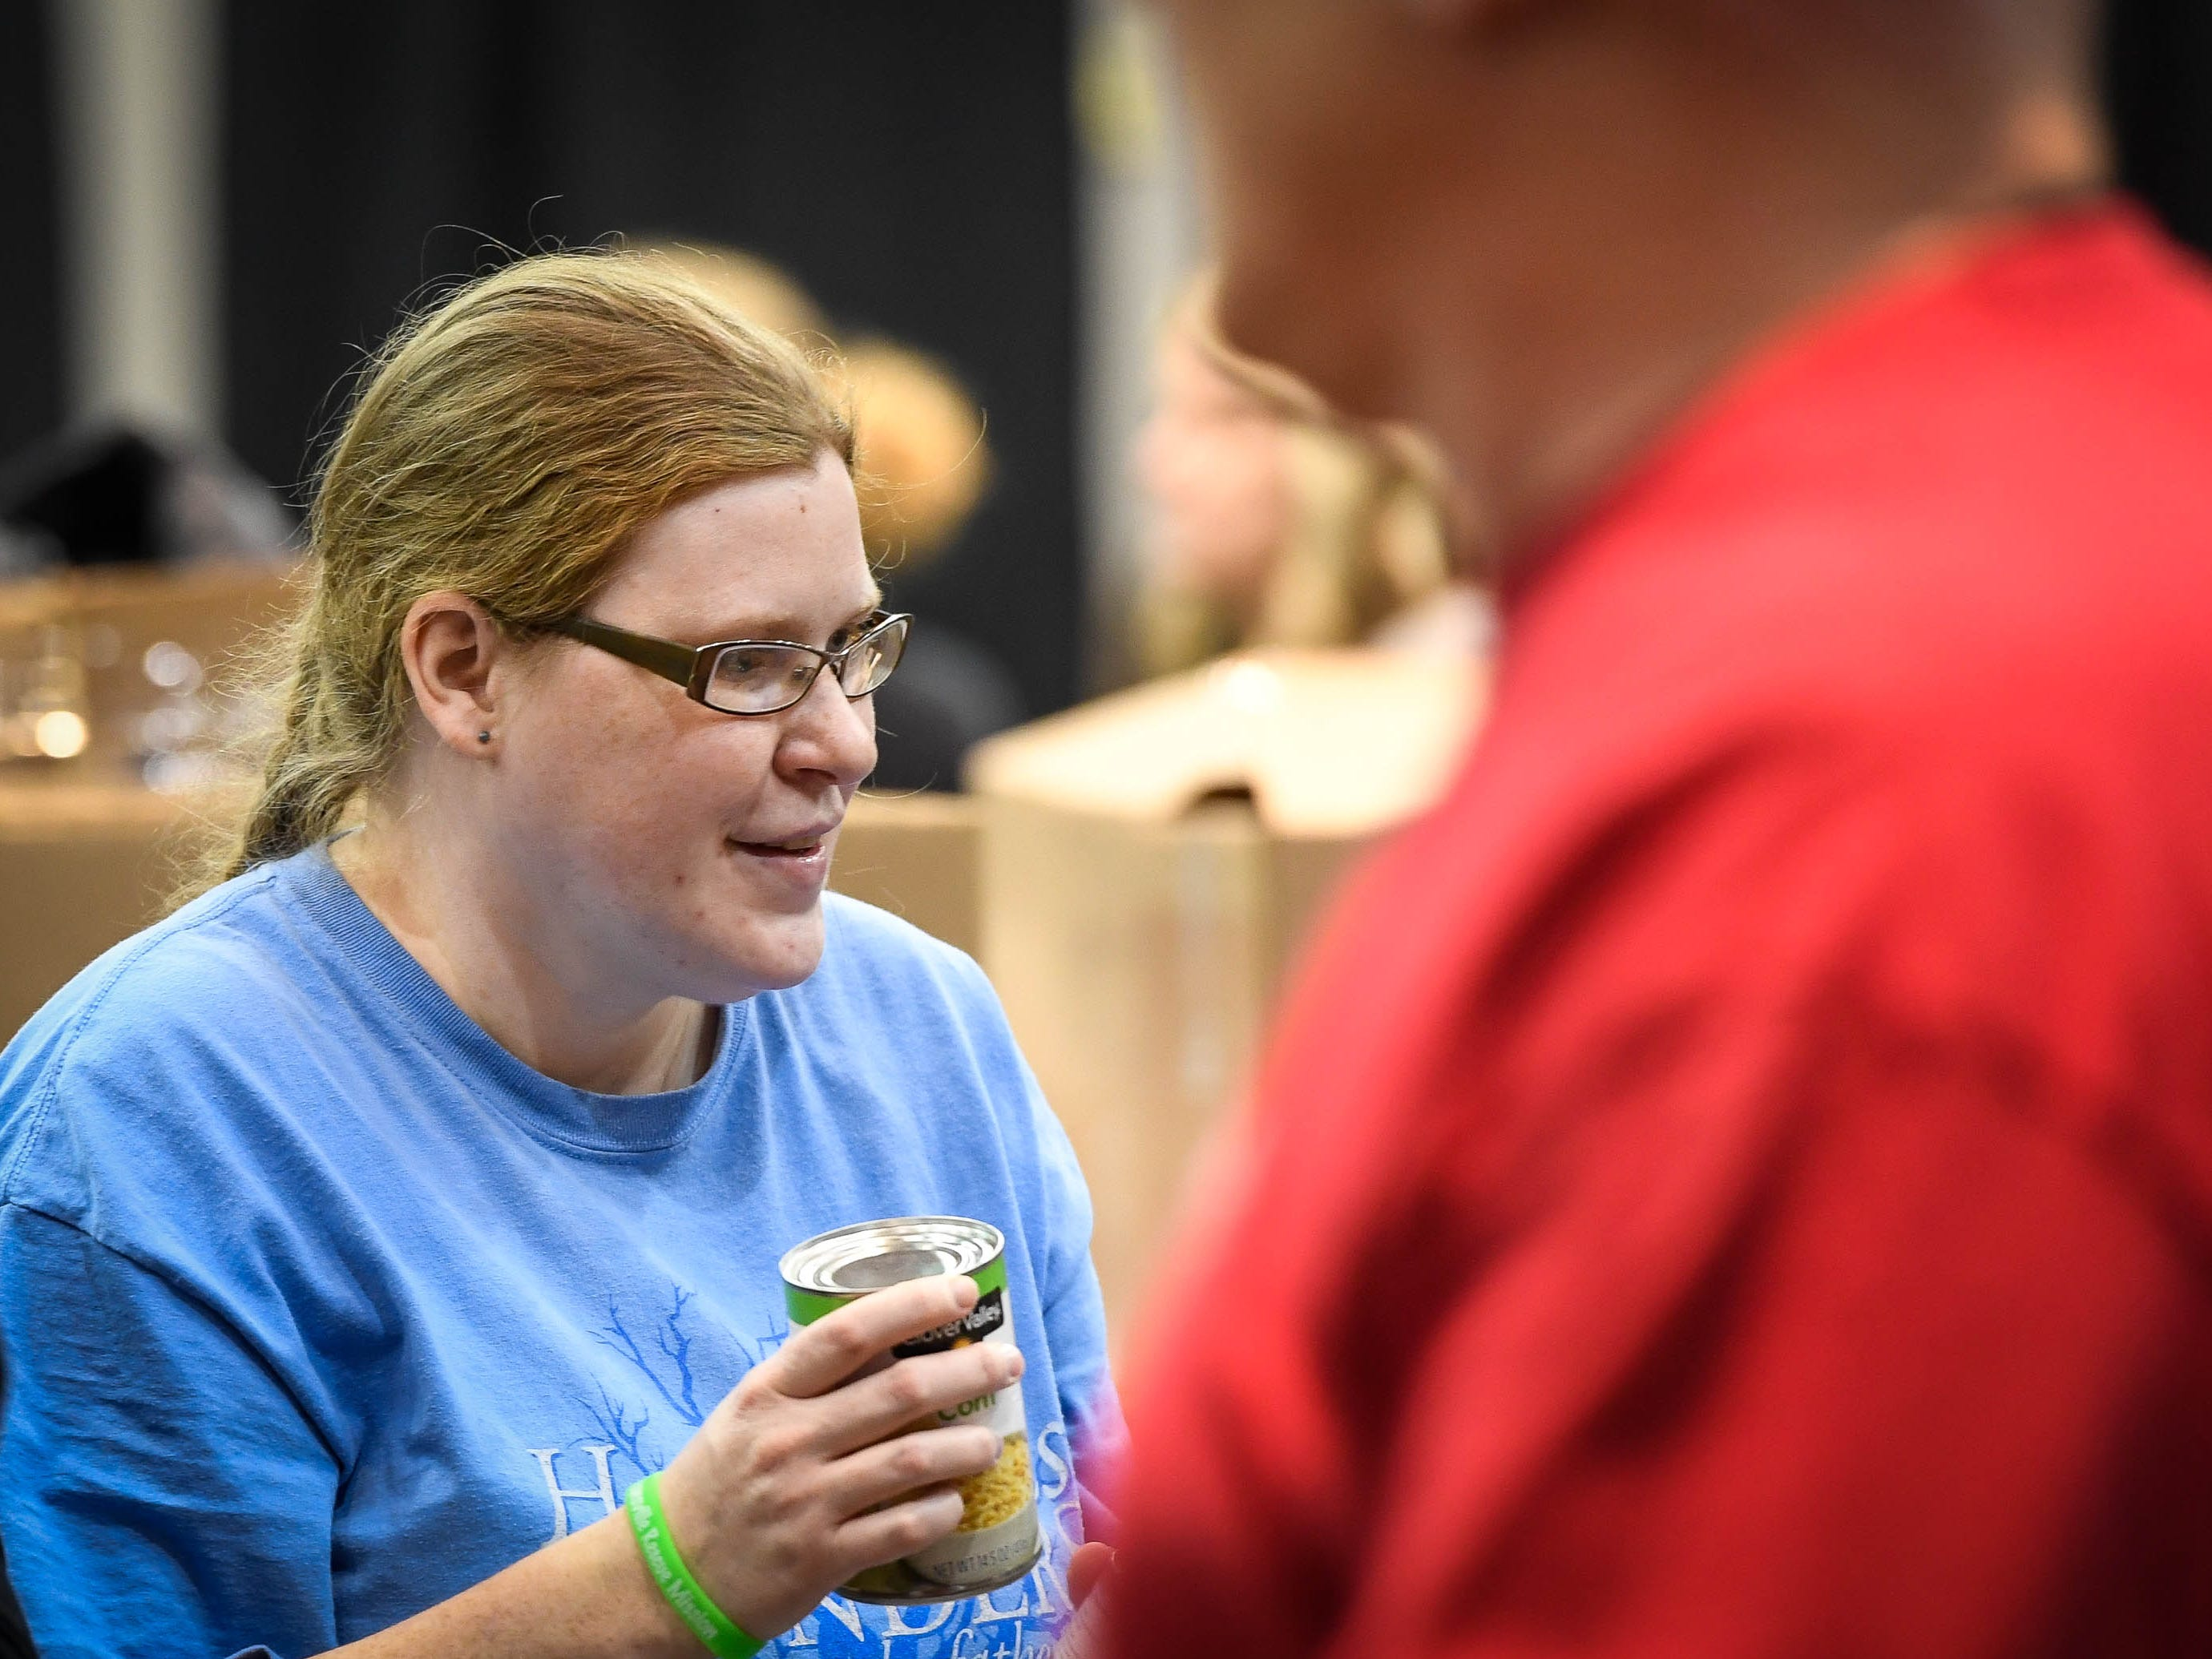 Volunteer Emily Oakley hands out canned vegetables at the Evansville Rescue Mission's 96th annual Gobbler Gathering held at the Old National Events Plaza Tuesday, November 20, 2018.